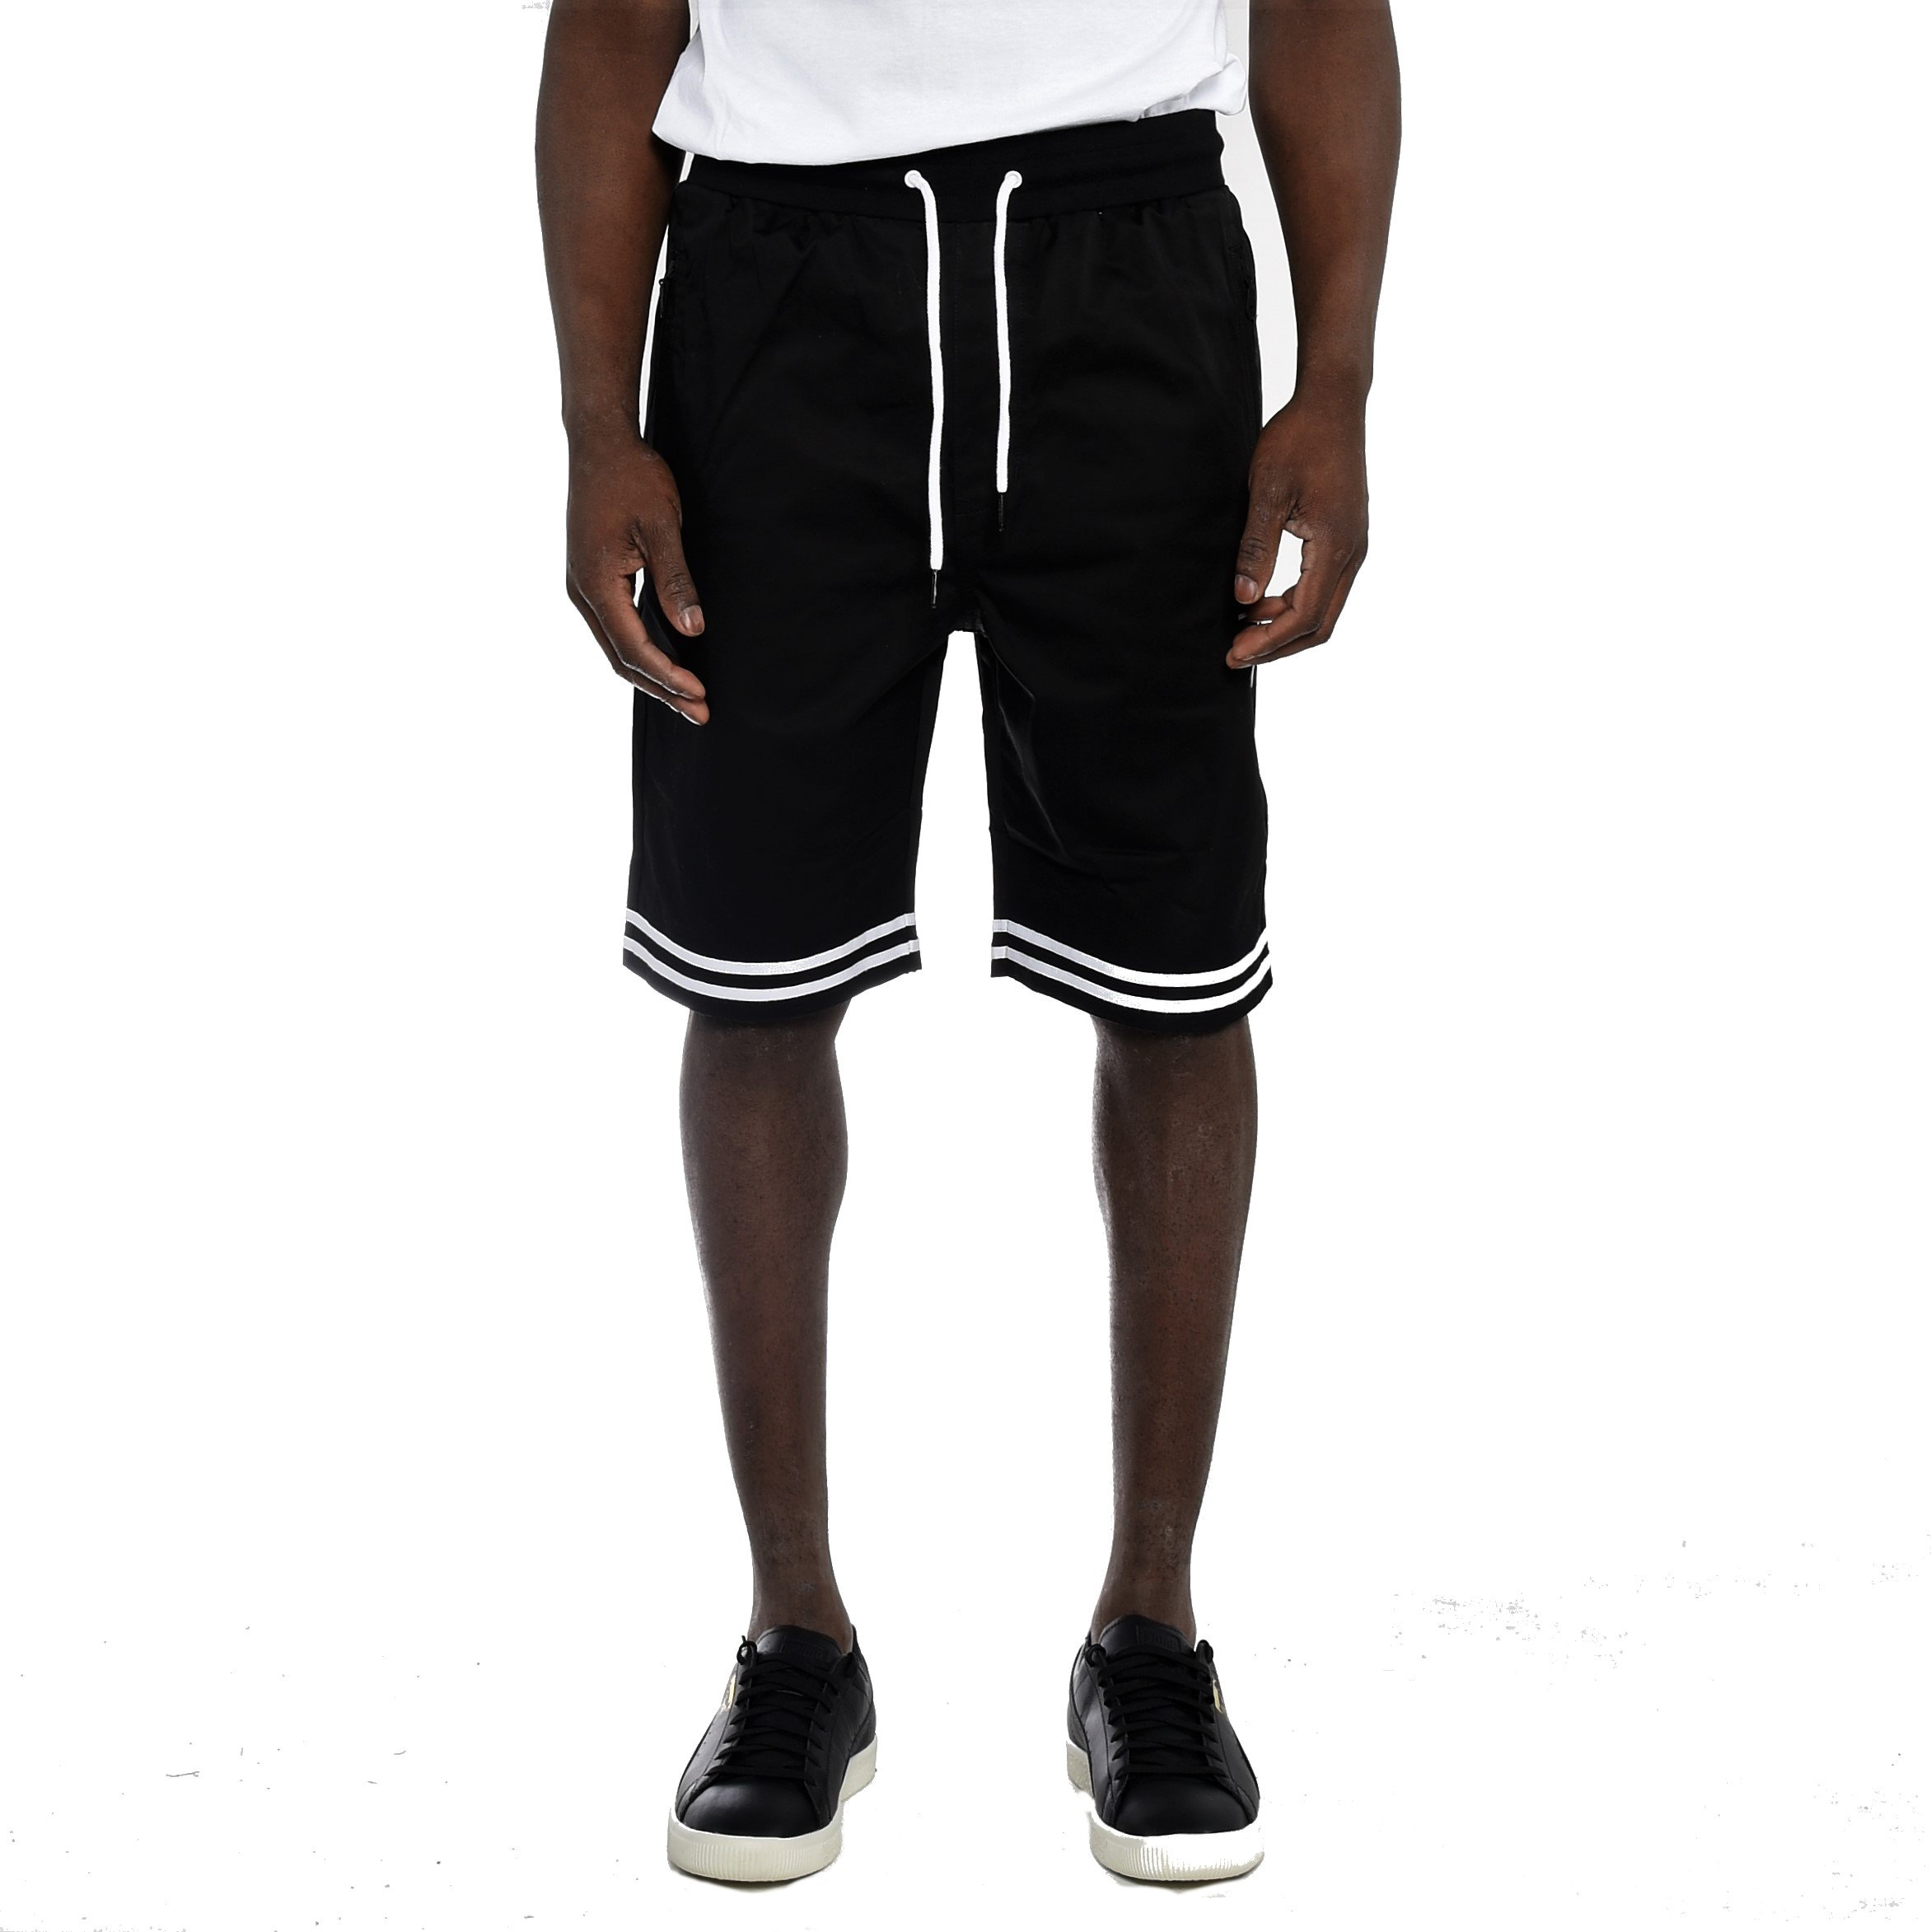 Traplord Men's Knit Shorts - World Wide